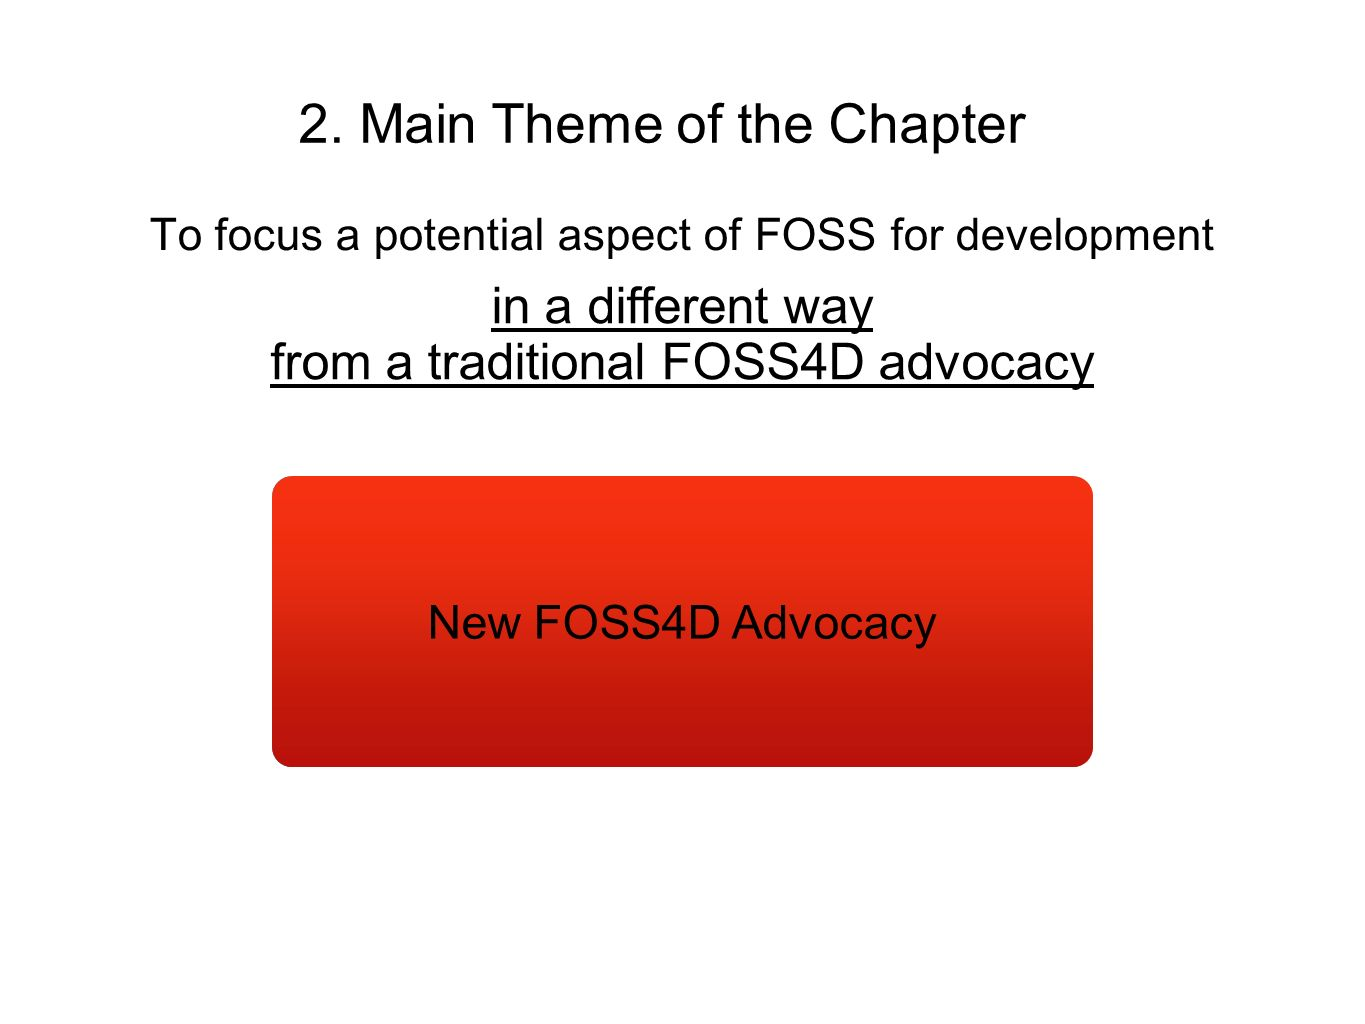 To focus a potential aspect of FOSS for development in a different way from a traditional FOSS4D advocacy Traditional FOSS4D Advocacy Economic Advanta